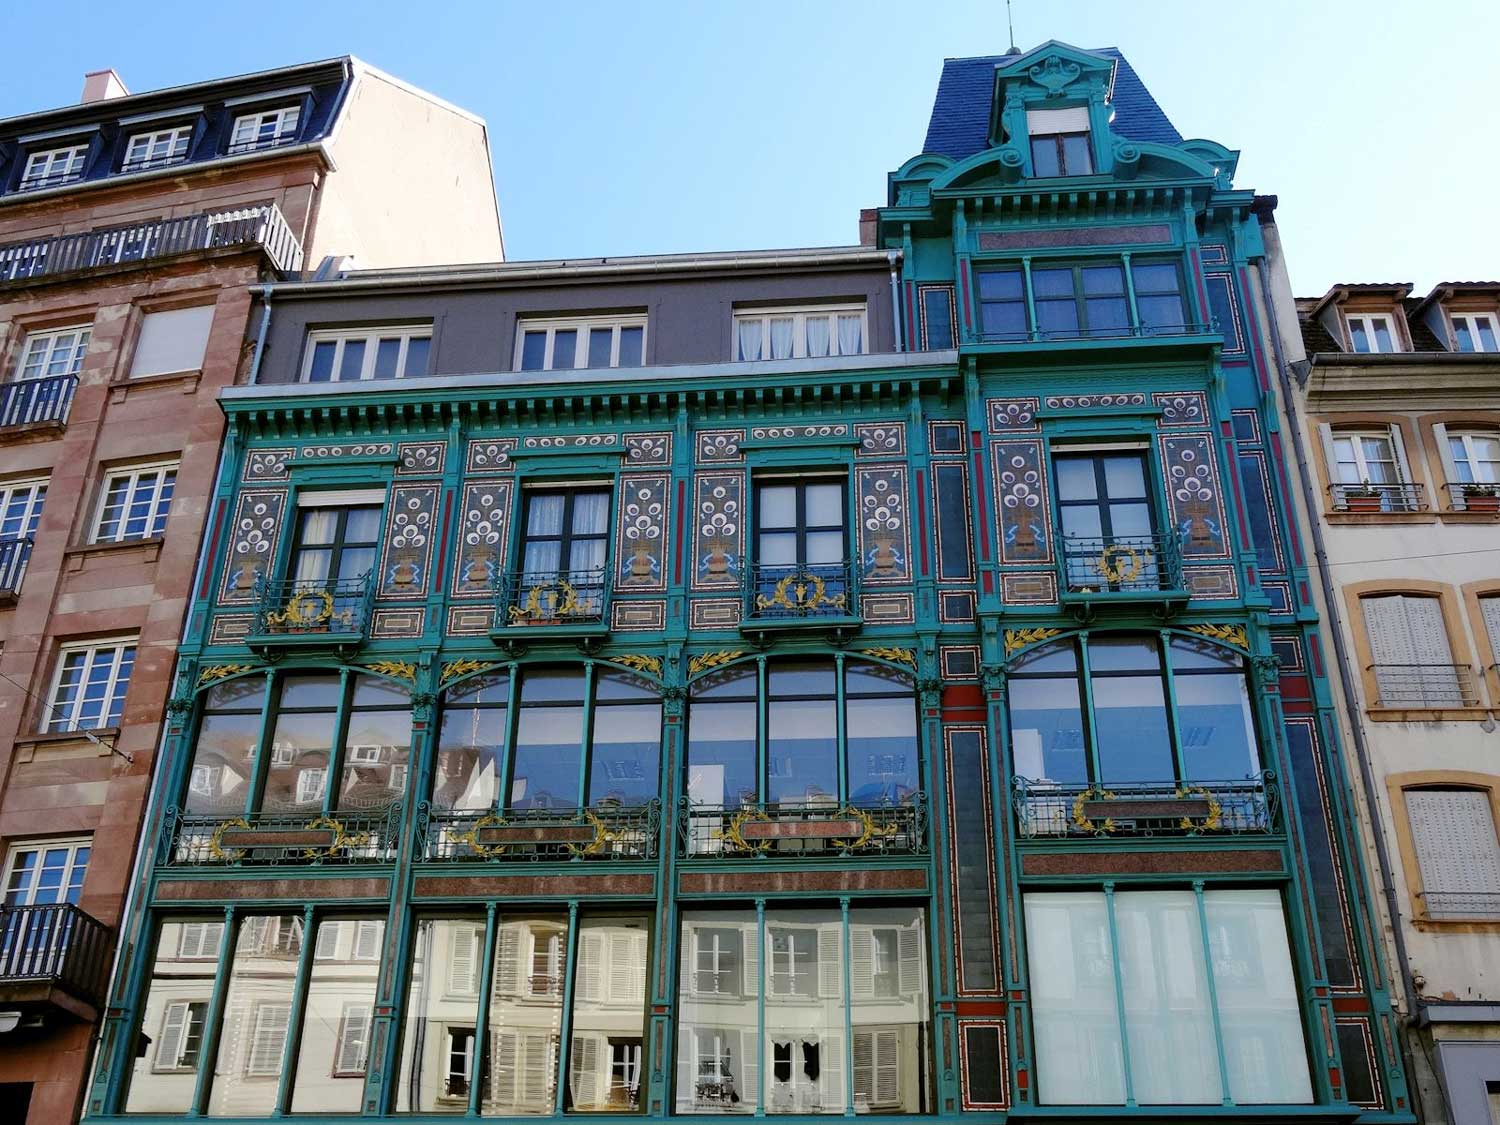 The Manrique store, Art Nouveau or Jugendstil style